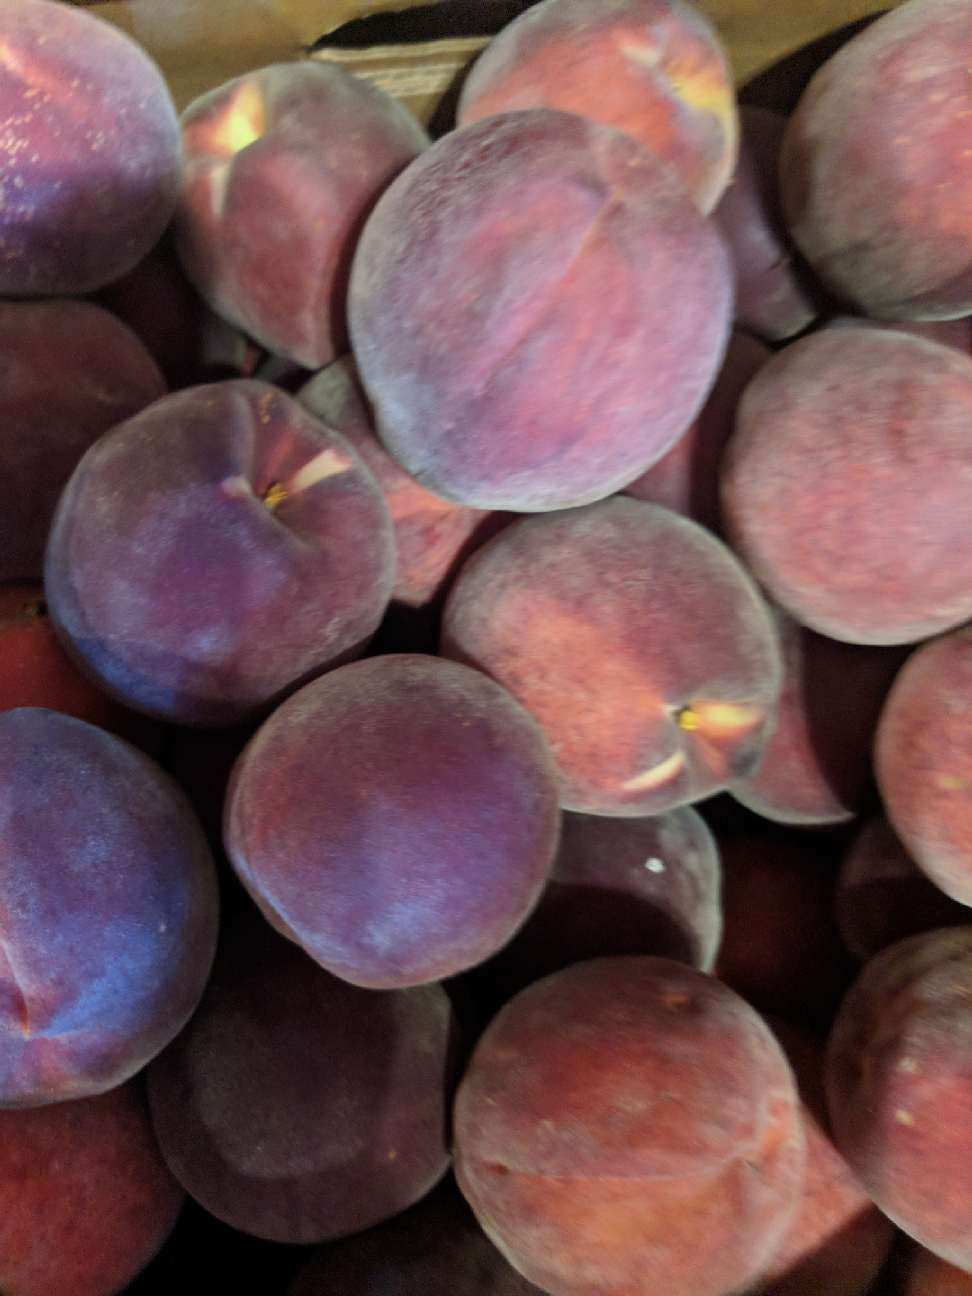 farm-fresh-peaches-reston-farm-market-va.JPG